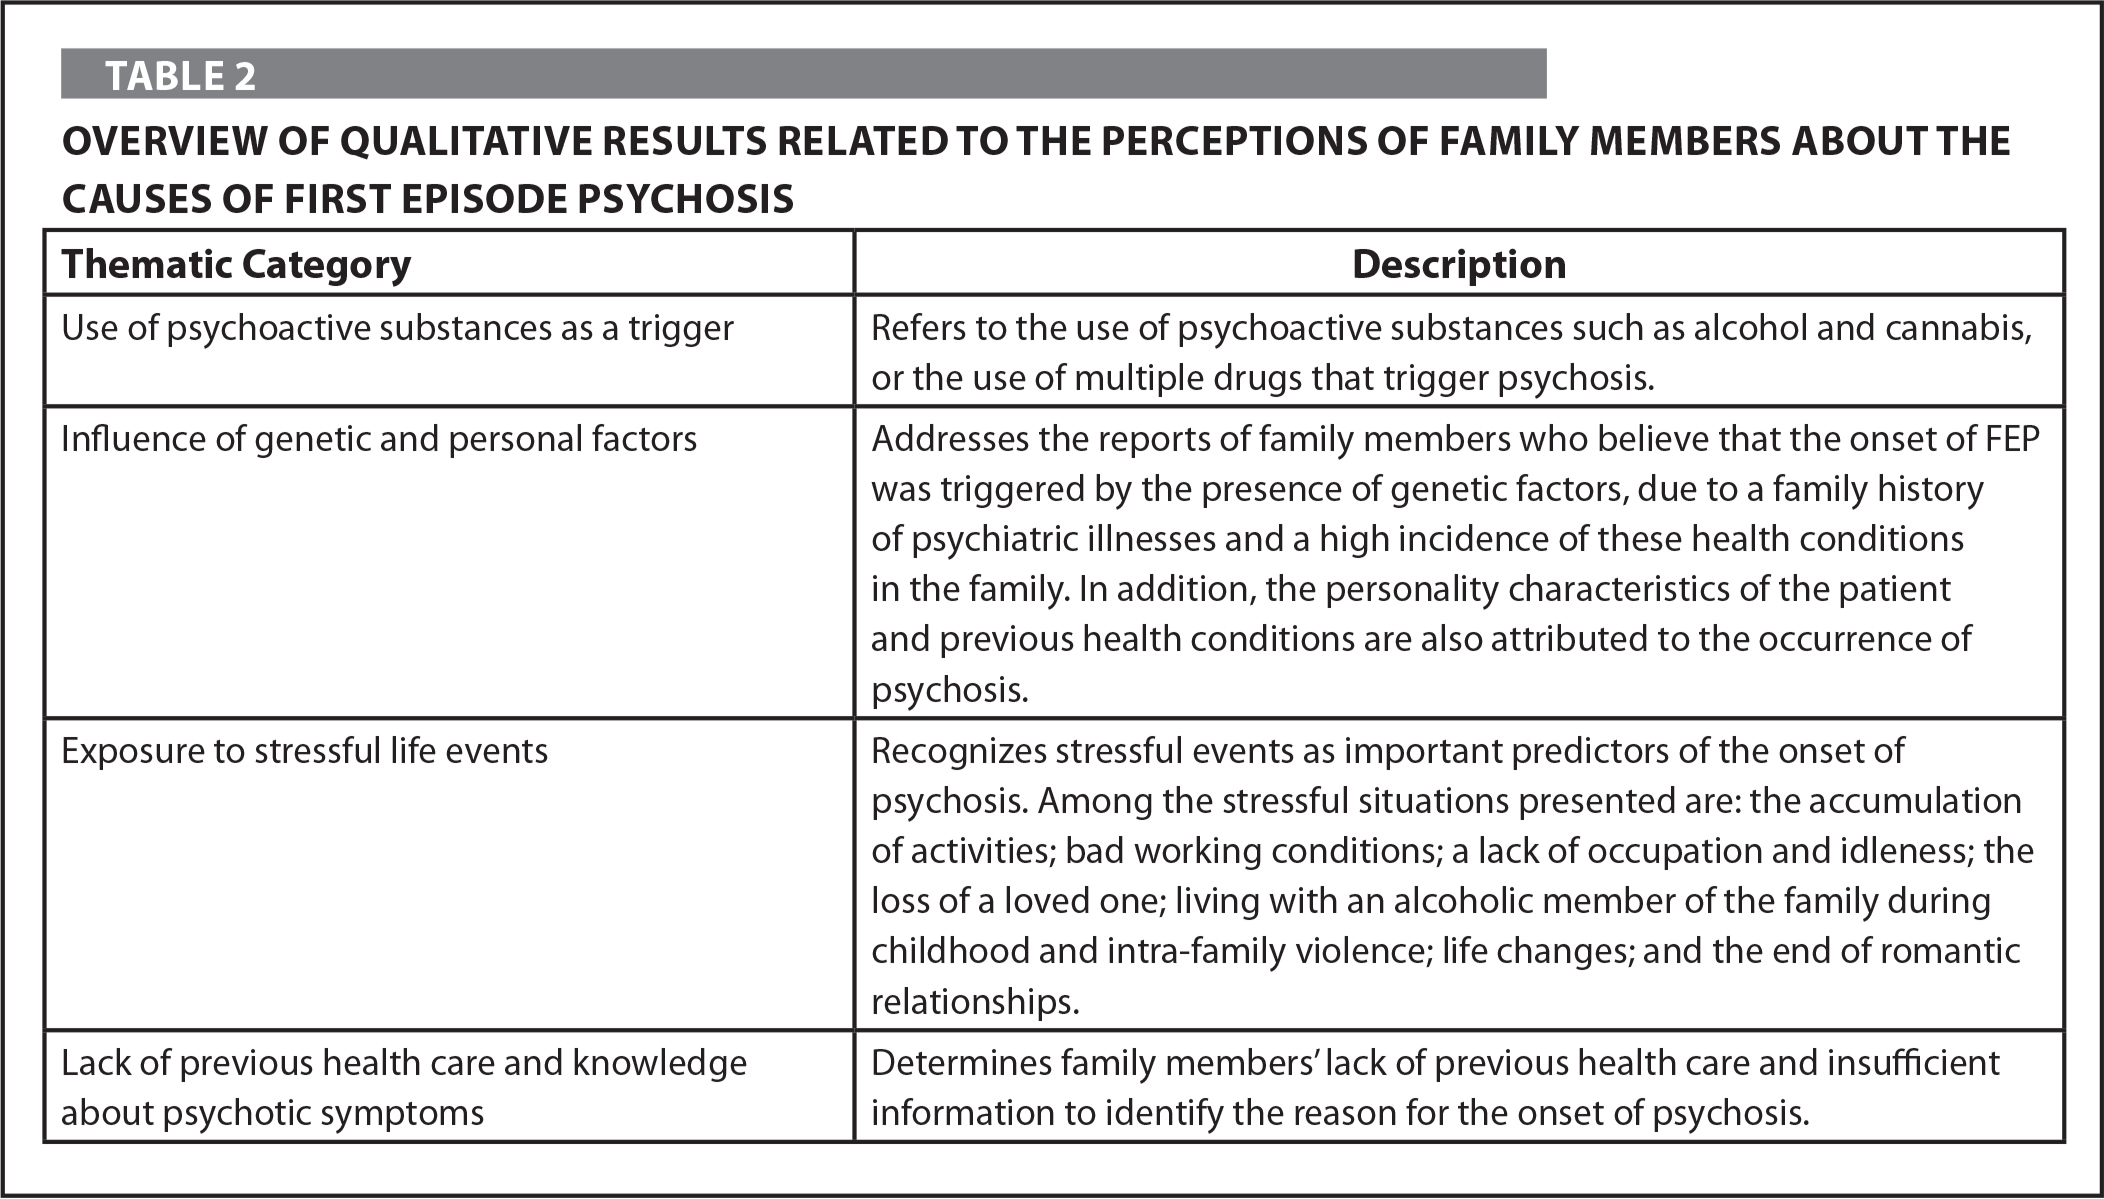 Overview of Qualitative Results Related to the Perceptions of Family Members About the Causes of First Episode Psychosis